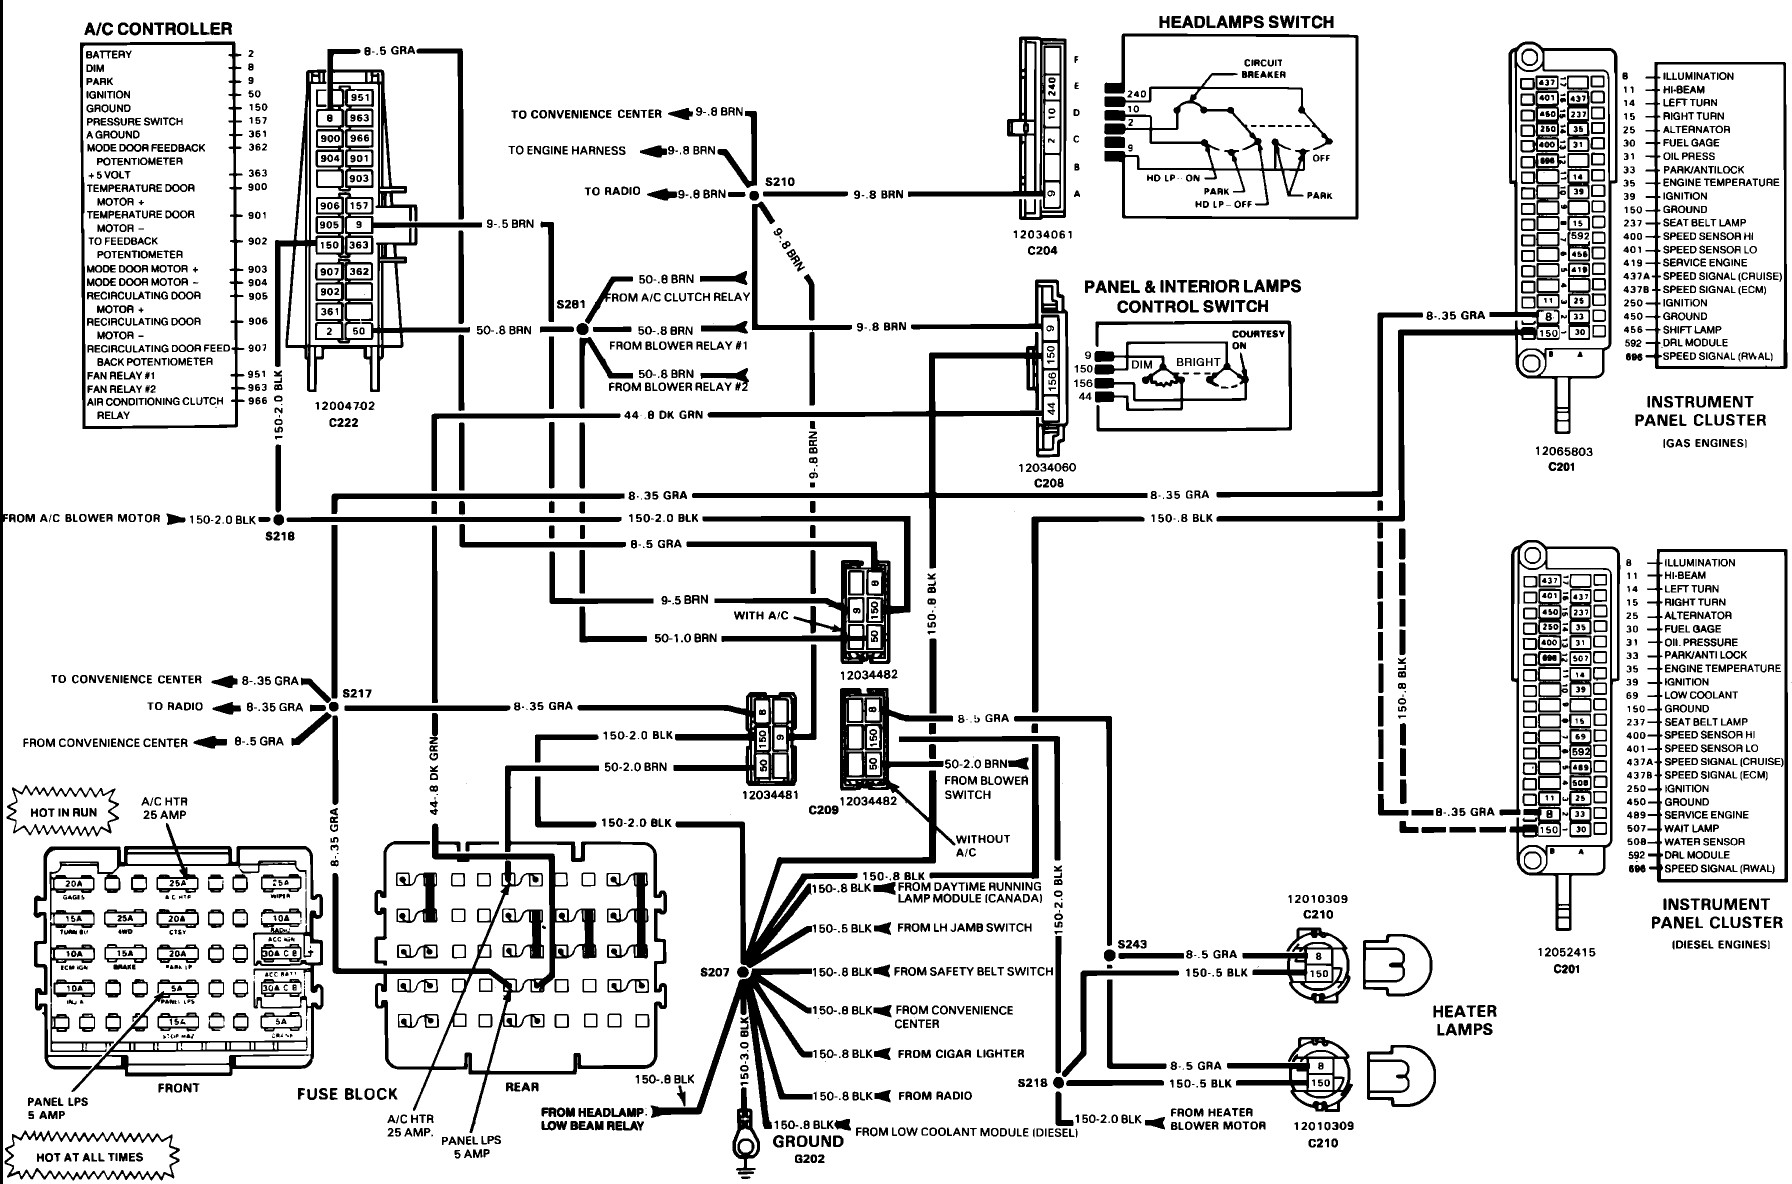 1984 Chevy Truck Wiring Diagram Wiring Diagram Likewise 1977 ford F100 Pickup Truck 78 Chevy Of 1984 Chevy Truck Wiring Diagram